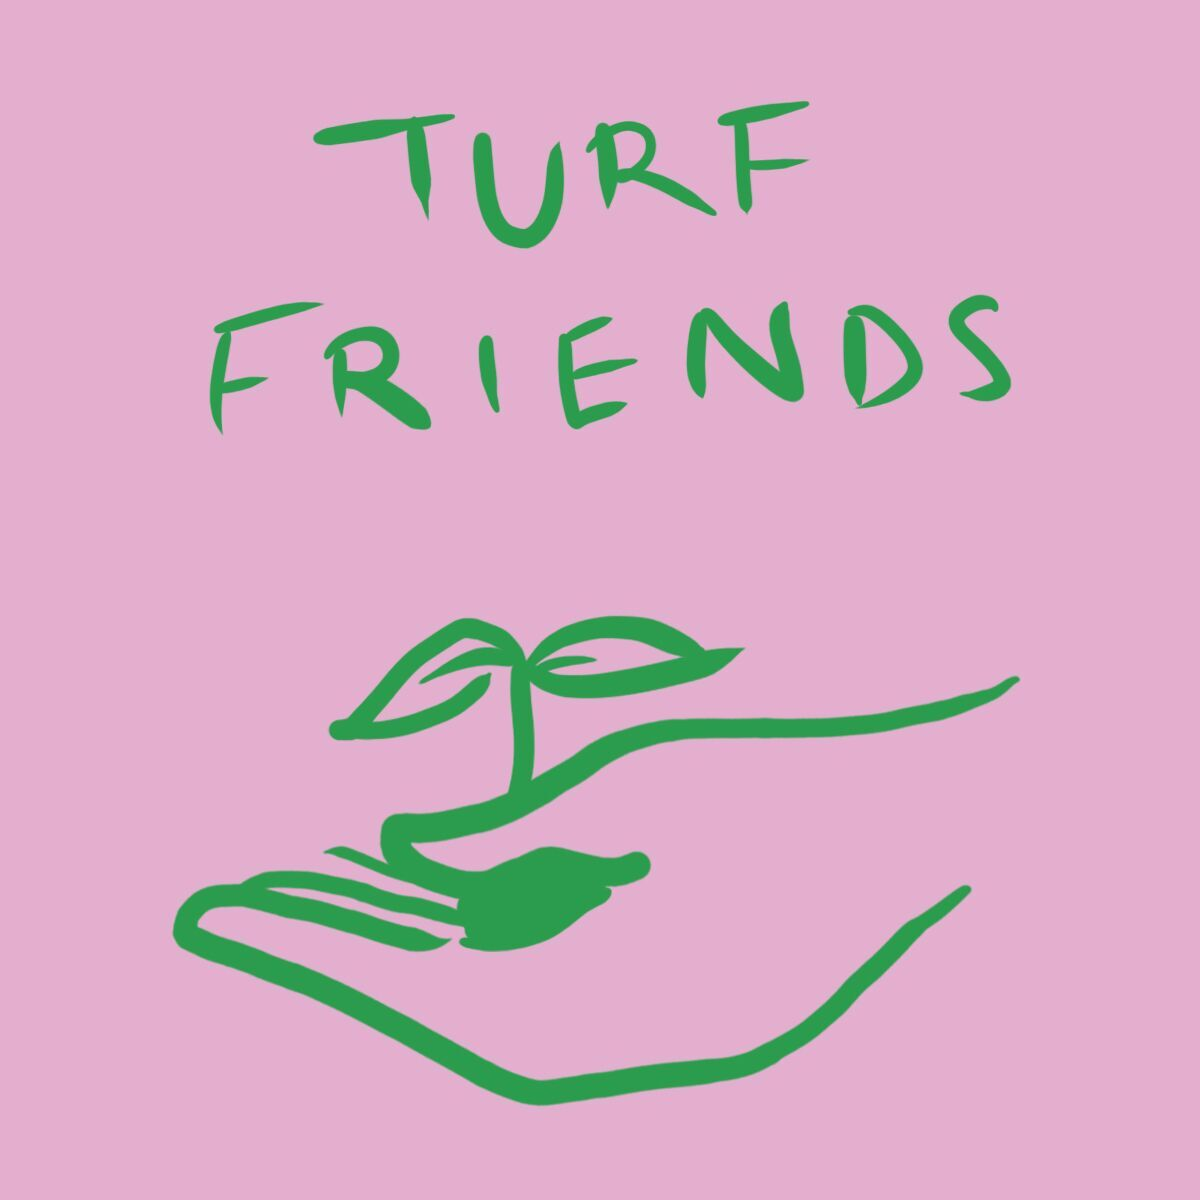 turf-friends_preview.jpeg